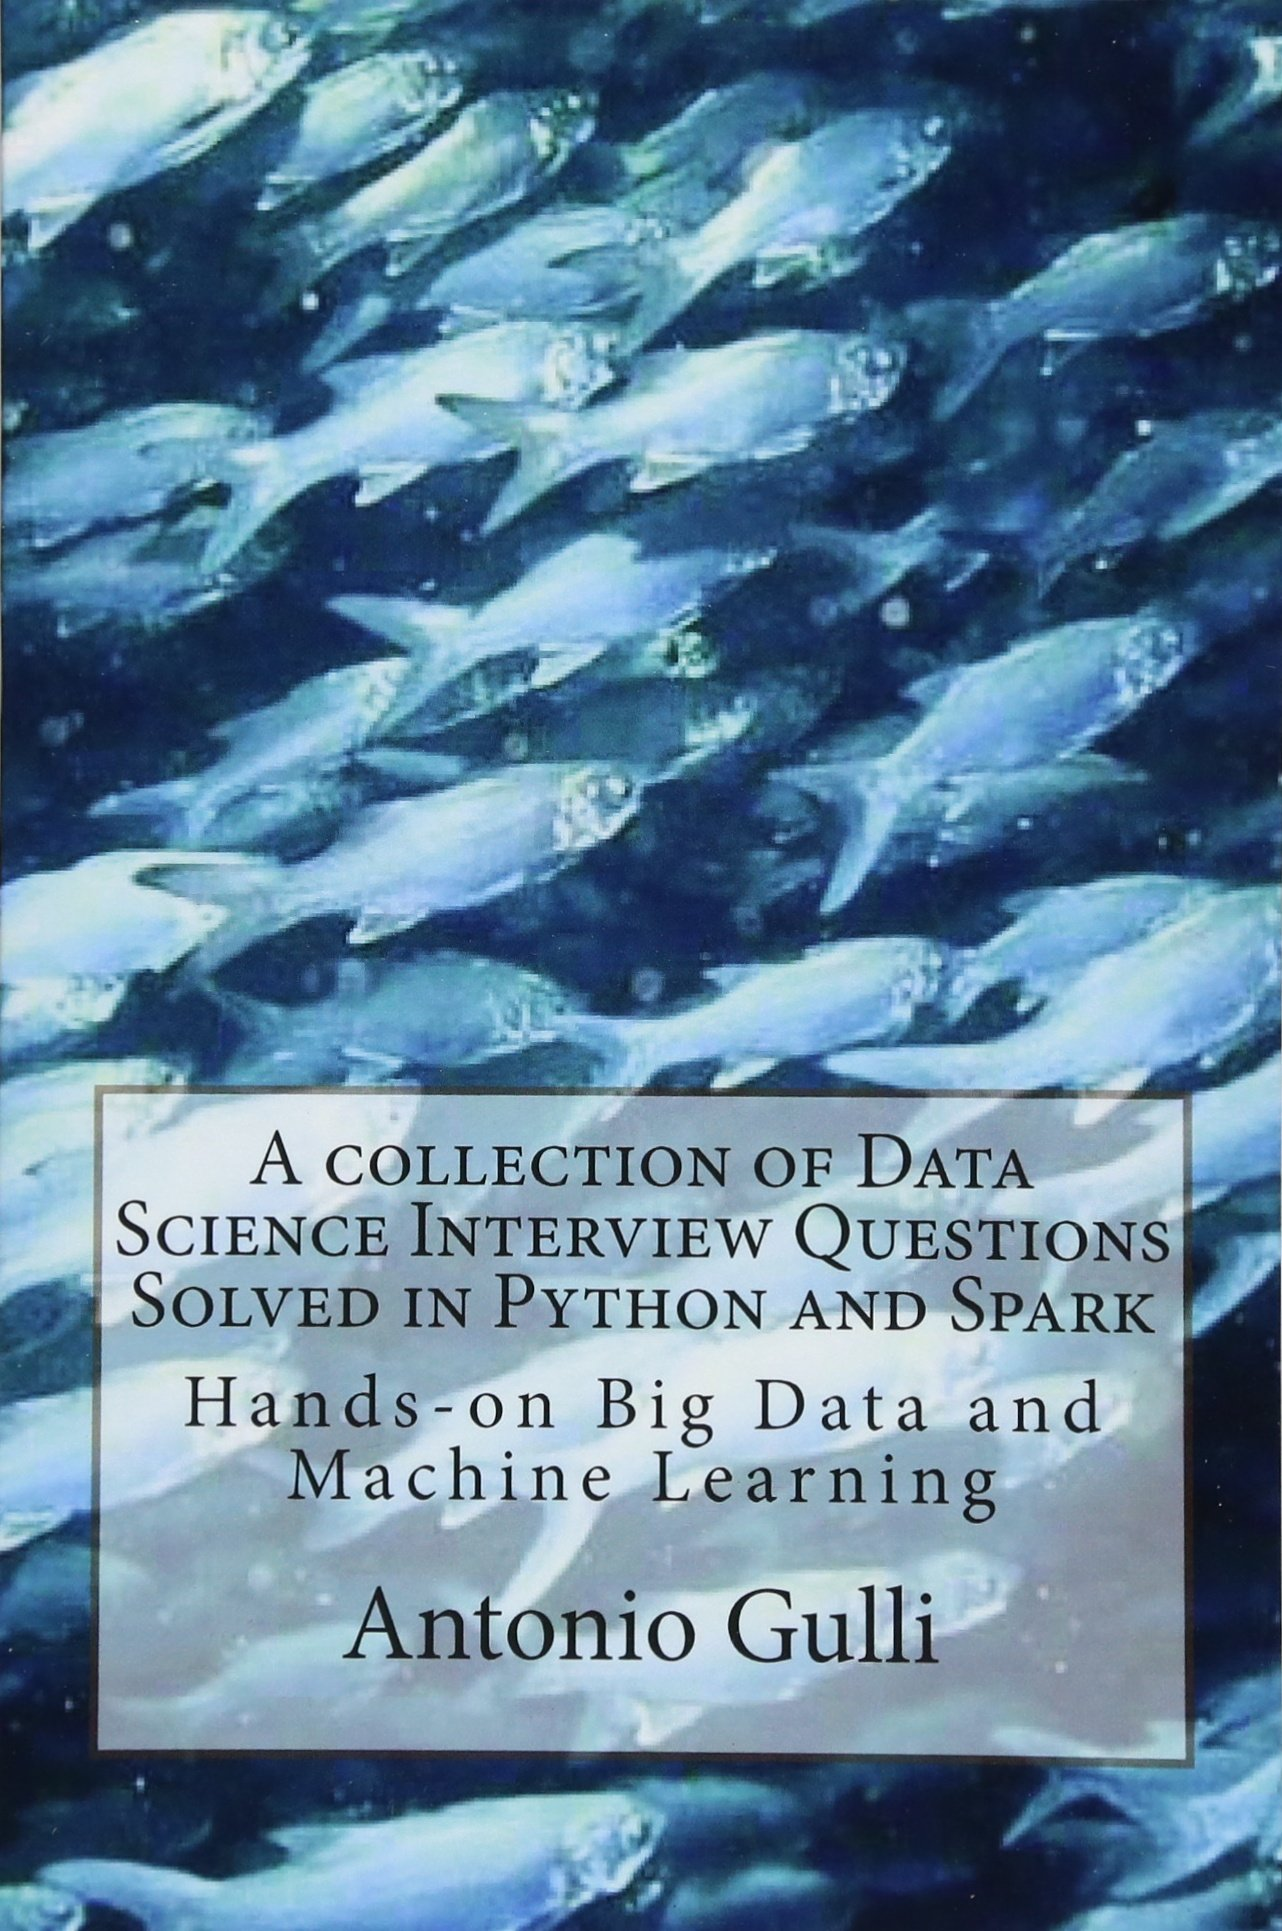 A collection of Data Science Interview Questions Solved in Python and Spark: Hands-on Big Data and Machine Learning (A Collection of Programming Interview Questions) (Volume 6)